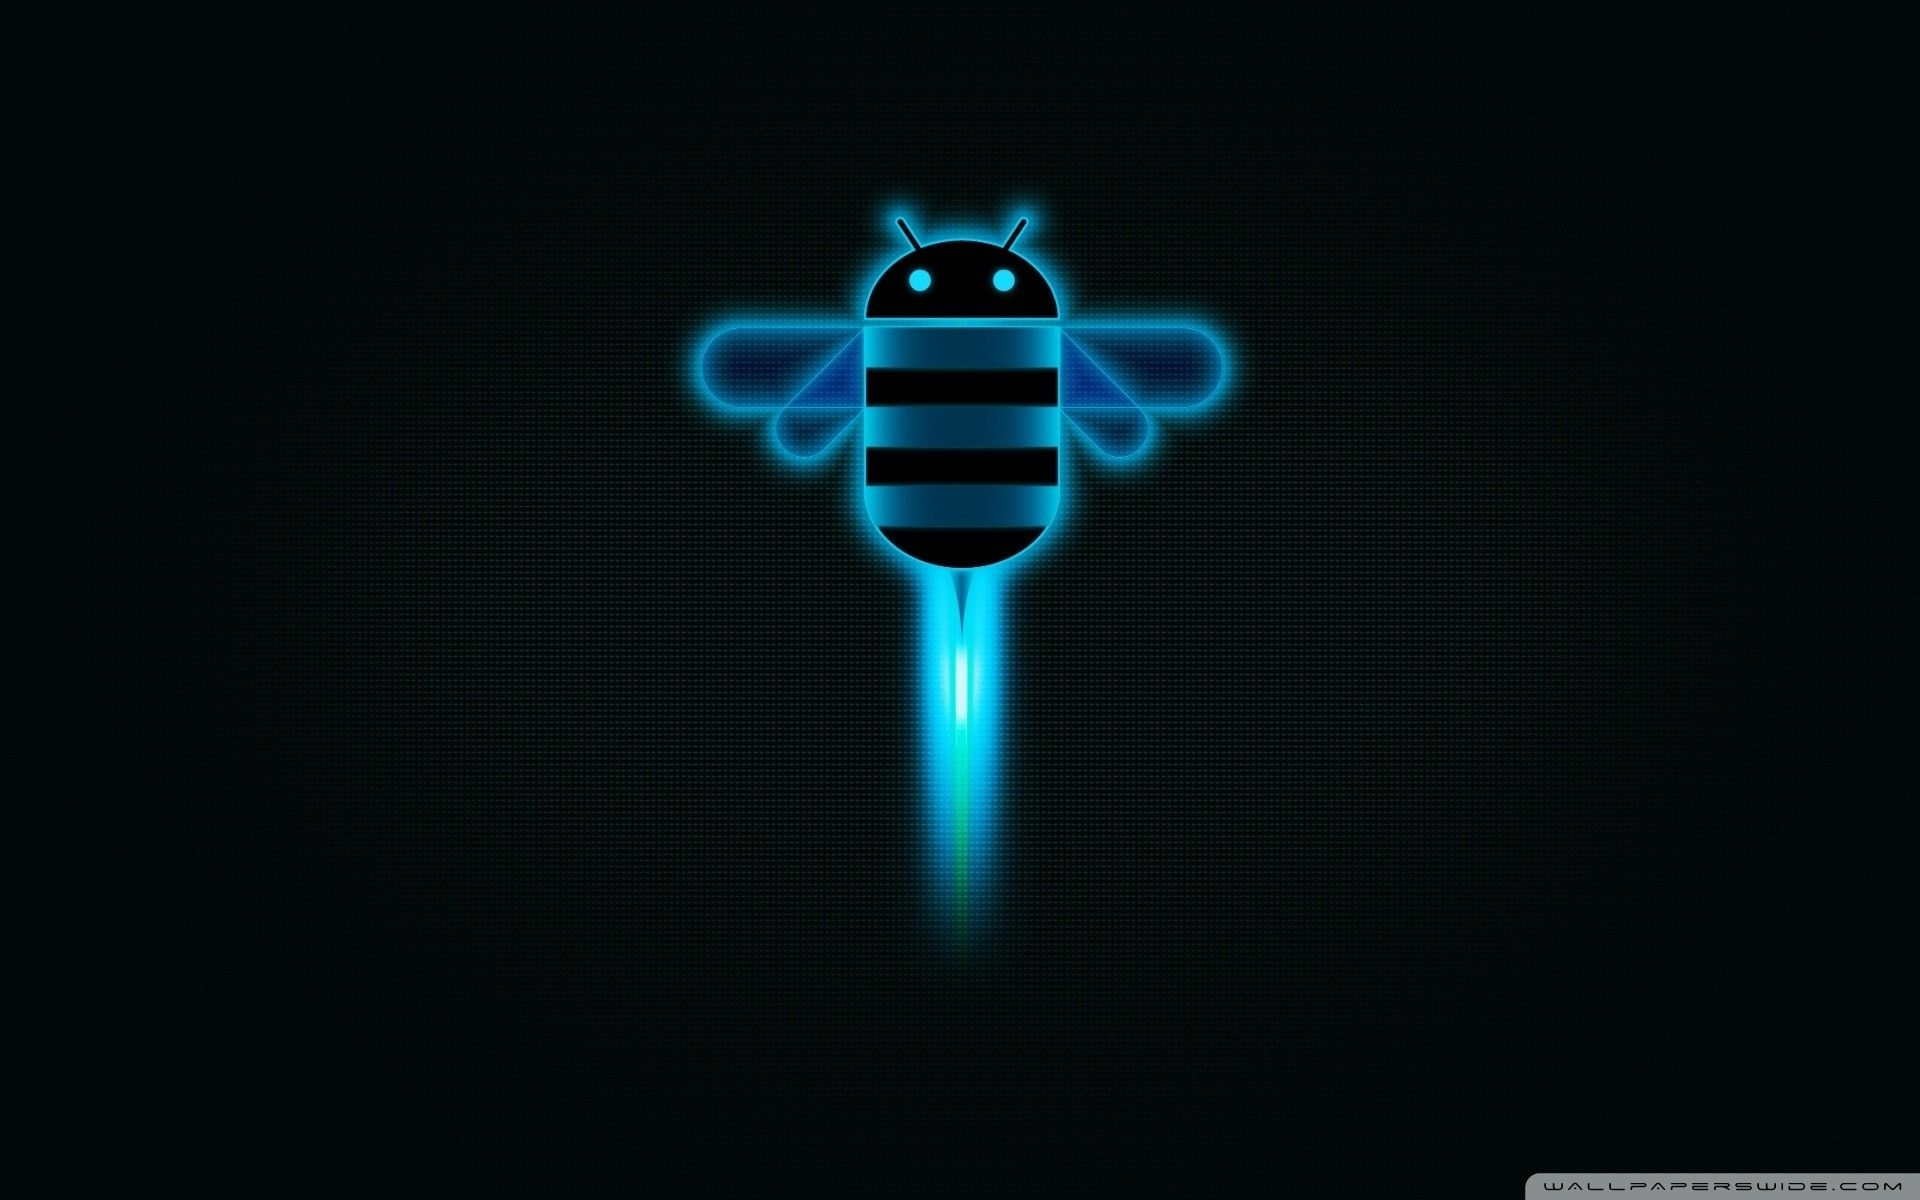 Android Honeycomb Bee Hd Wallpaper Android Honeycomb Wallpaper Best Wallpapers Android